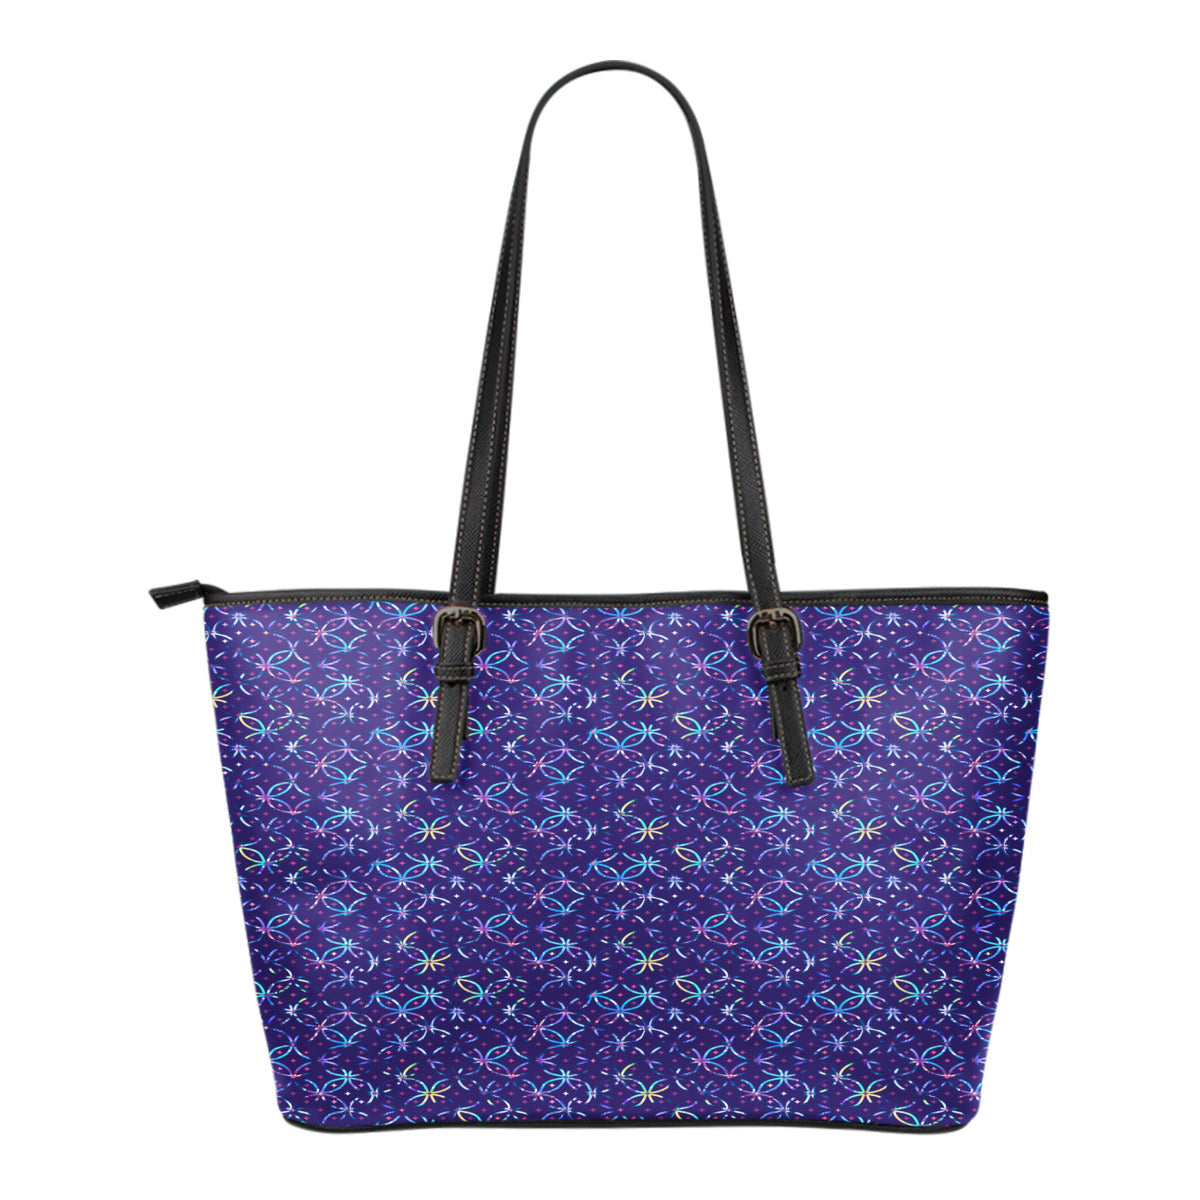 Mermaid Themed Design C3 Women Small Leather Tote Bag